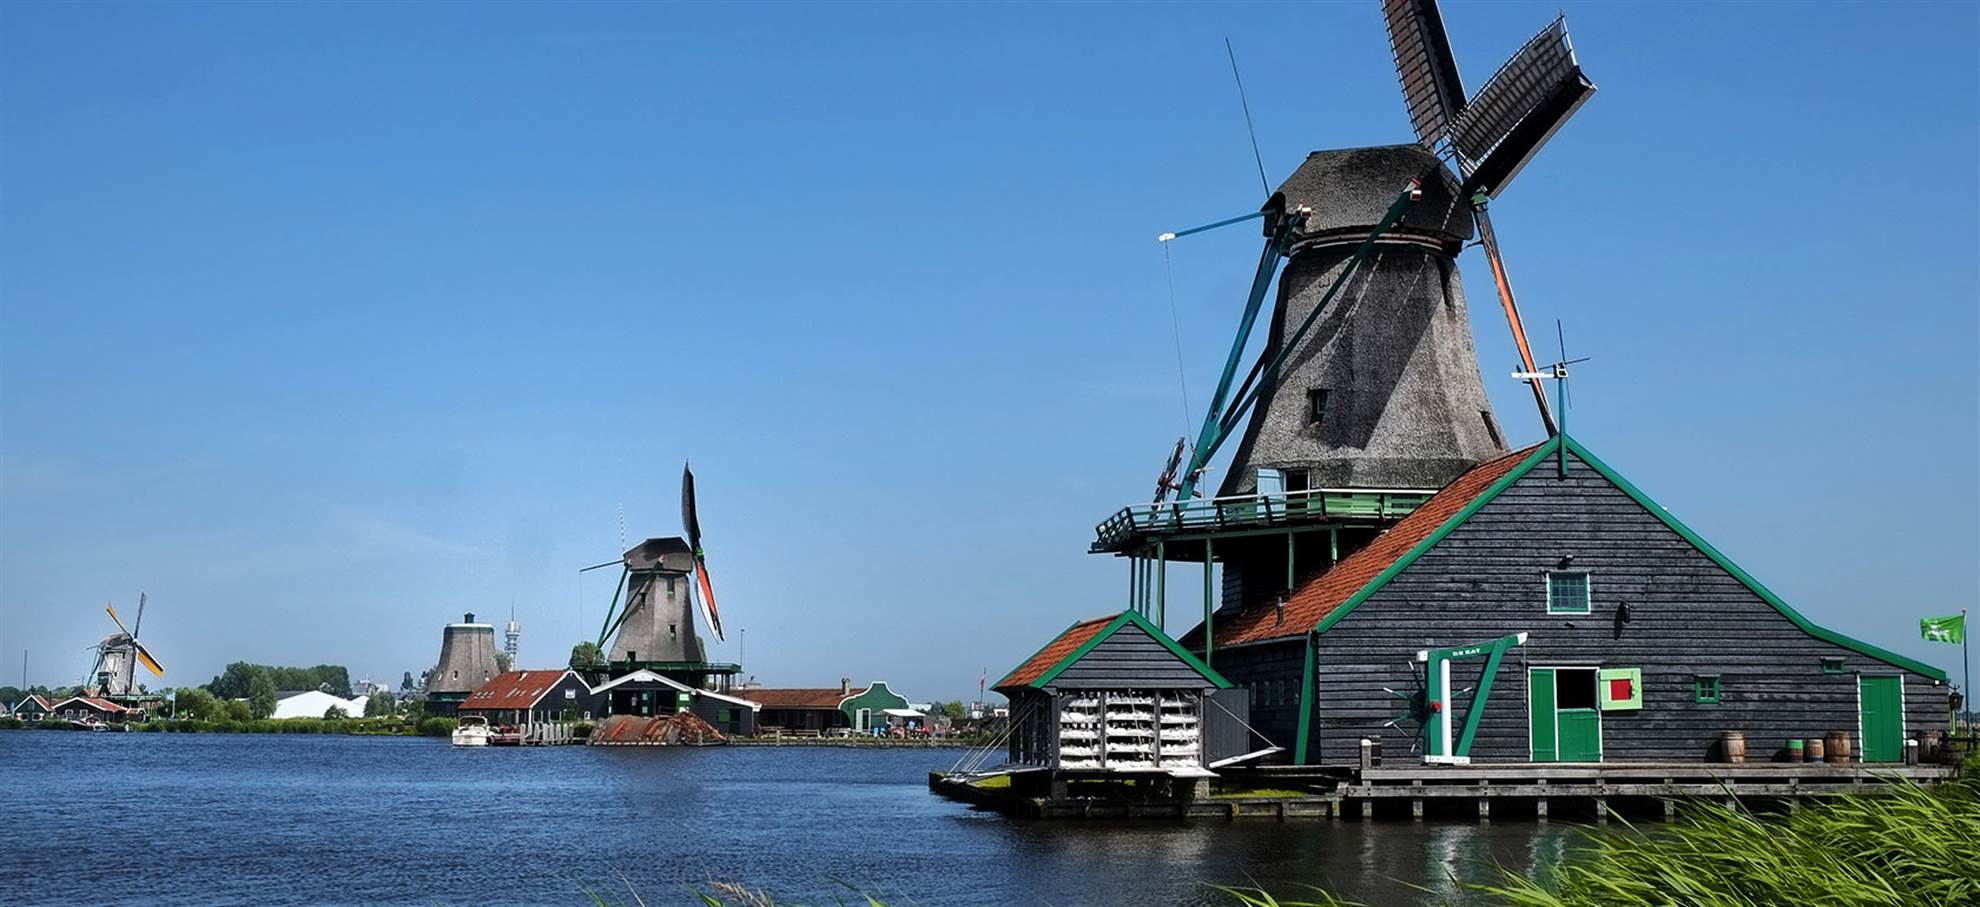 Day Trip to Keukenhof & Flowerfields, Volendam & Windmills - Small Group Tour